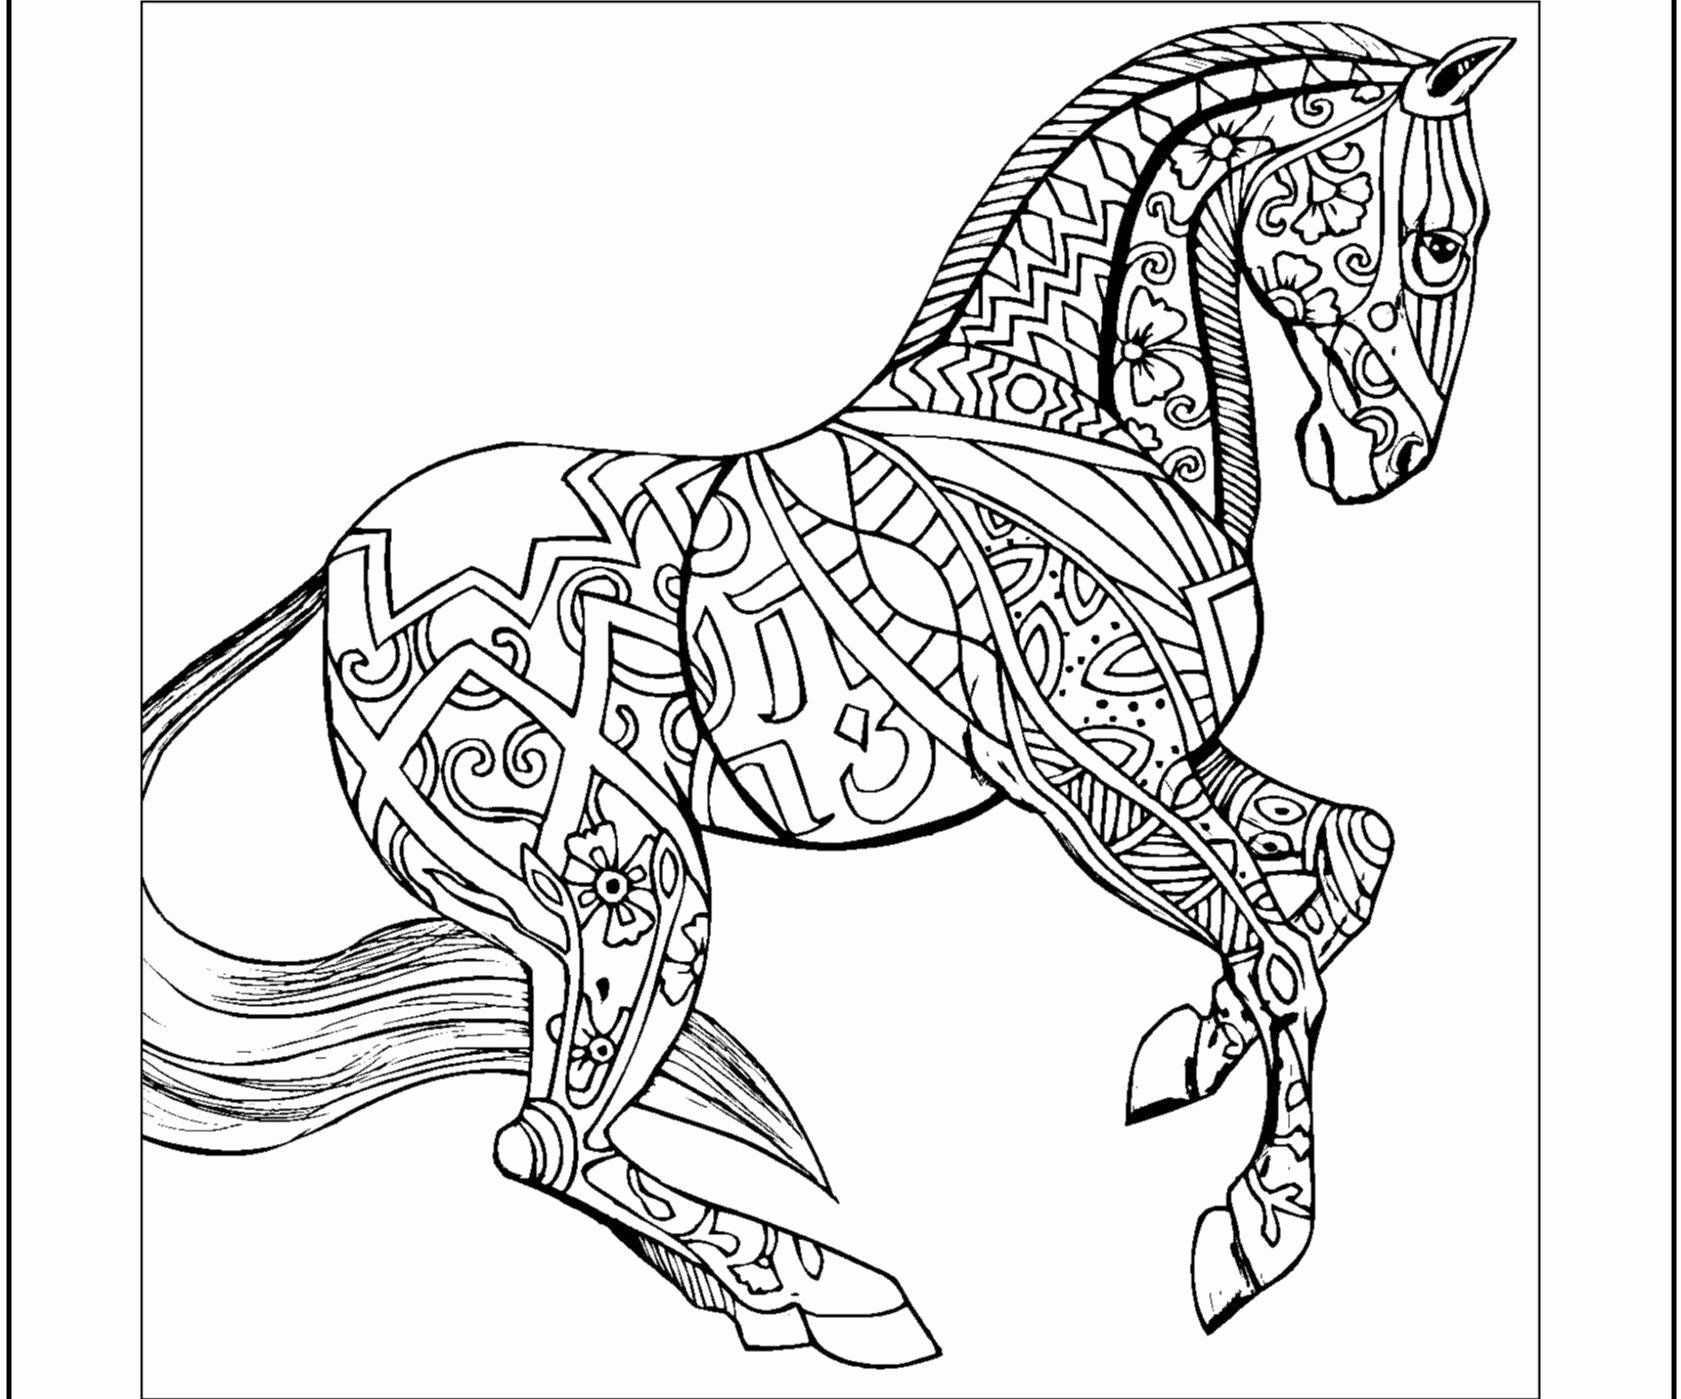 horse coloring sheets horse coloring pages preschool and kindergarten horse sheets coloring